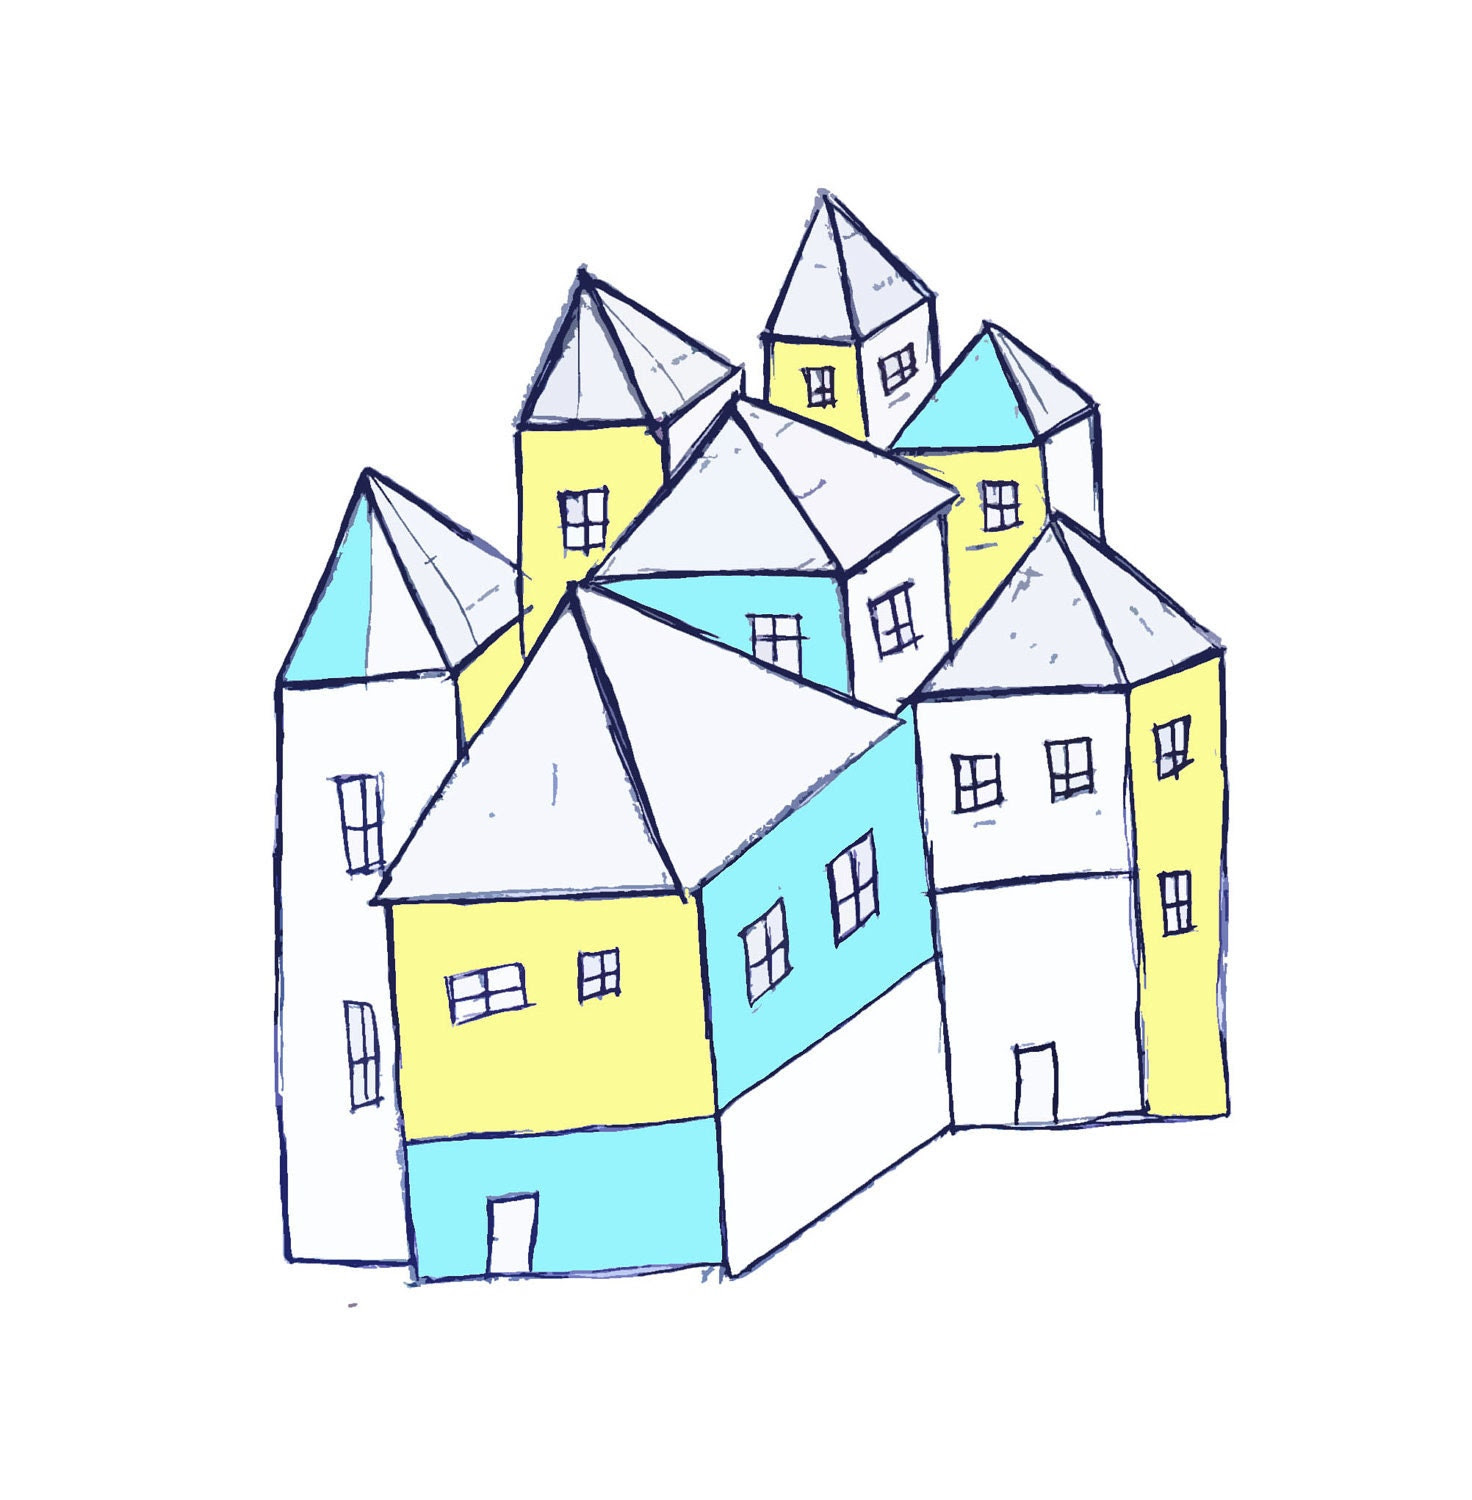 Small houses  - Limited edition print  - Art print - Free shipping - 99heads